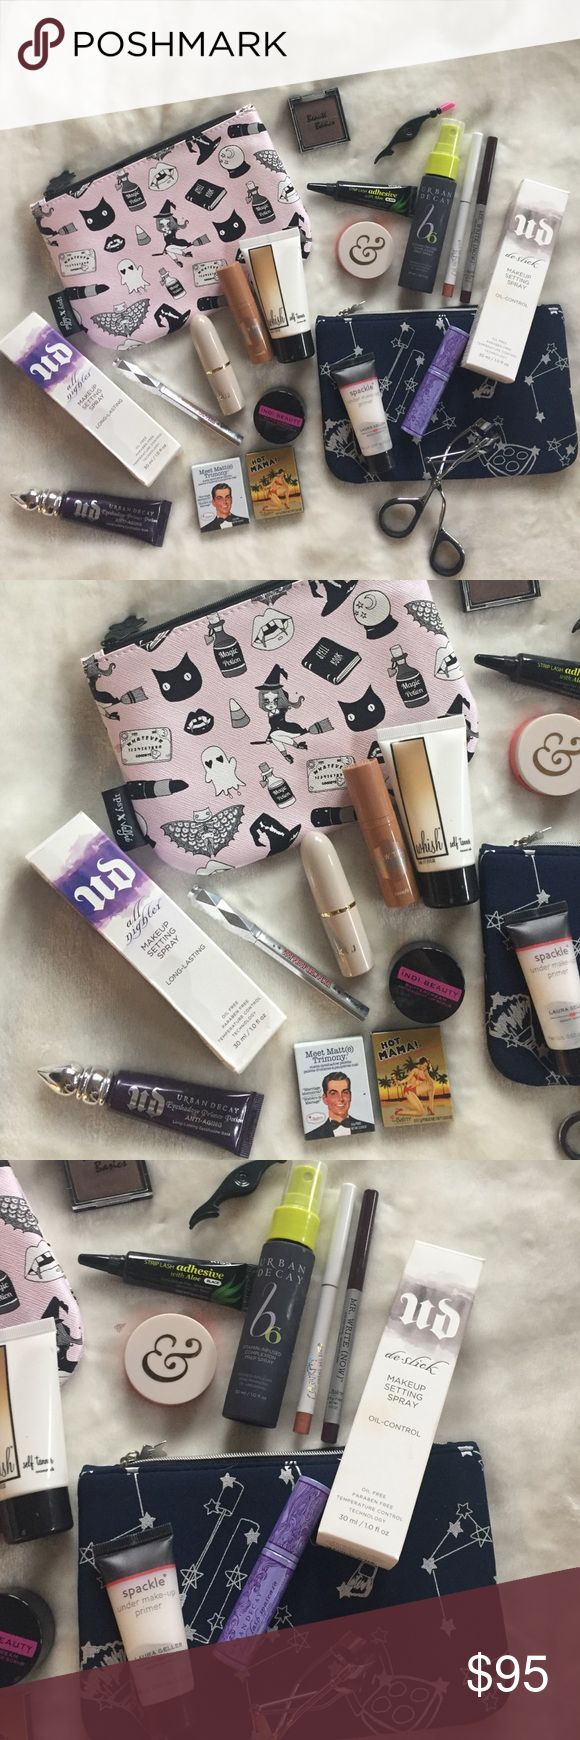 25+ best ideas about Urban decay sale on Pinterest | Urban decay ...